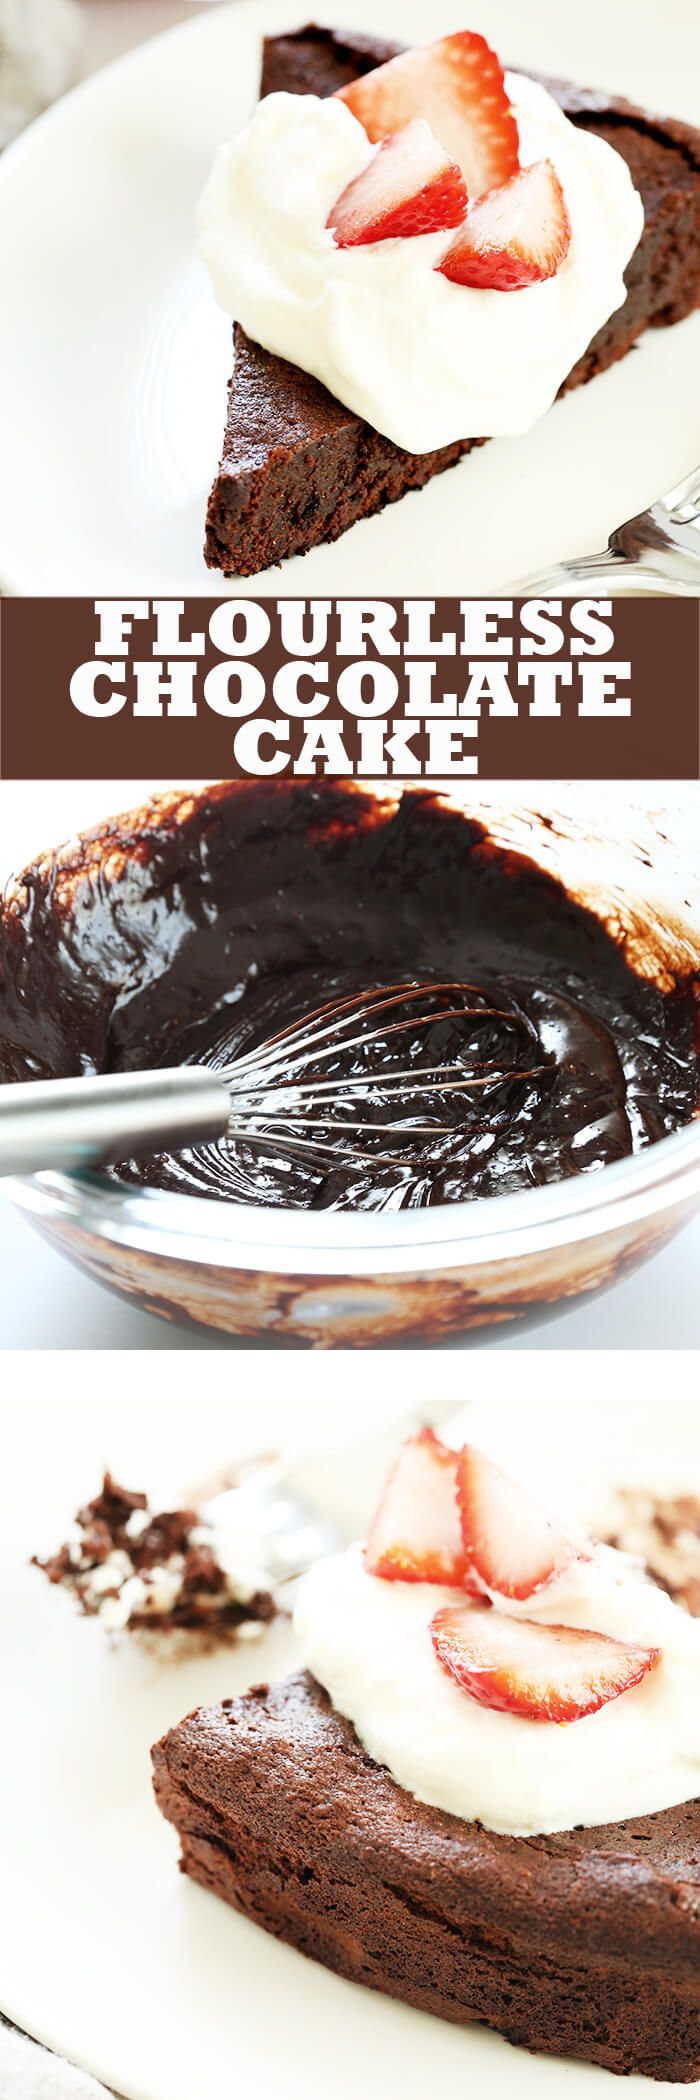 You'll never believe how easy it is to create your very own naturally gluten free flourless chocolate cake at home!